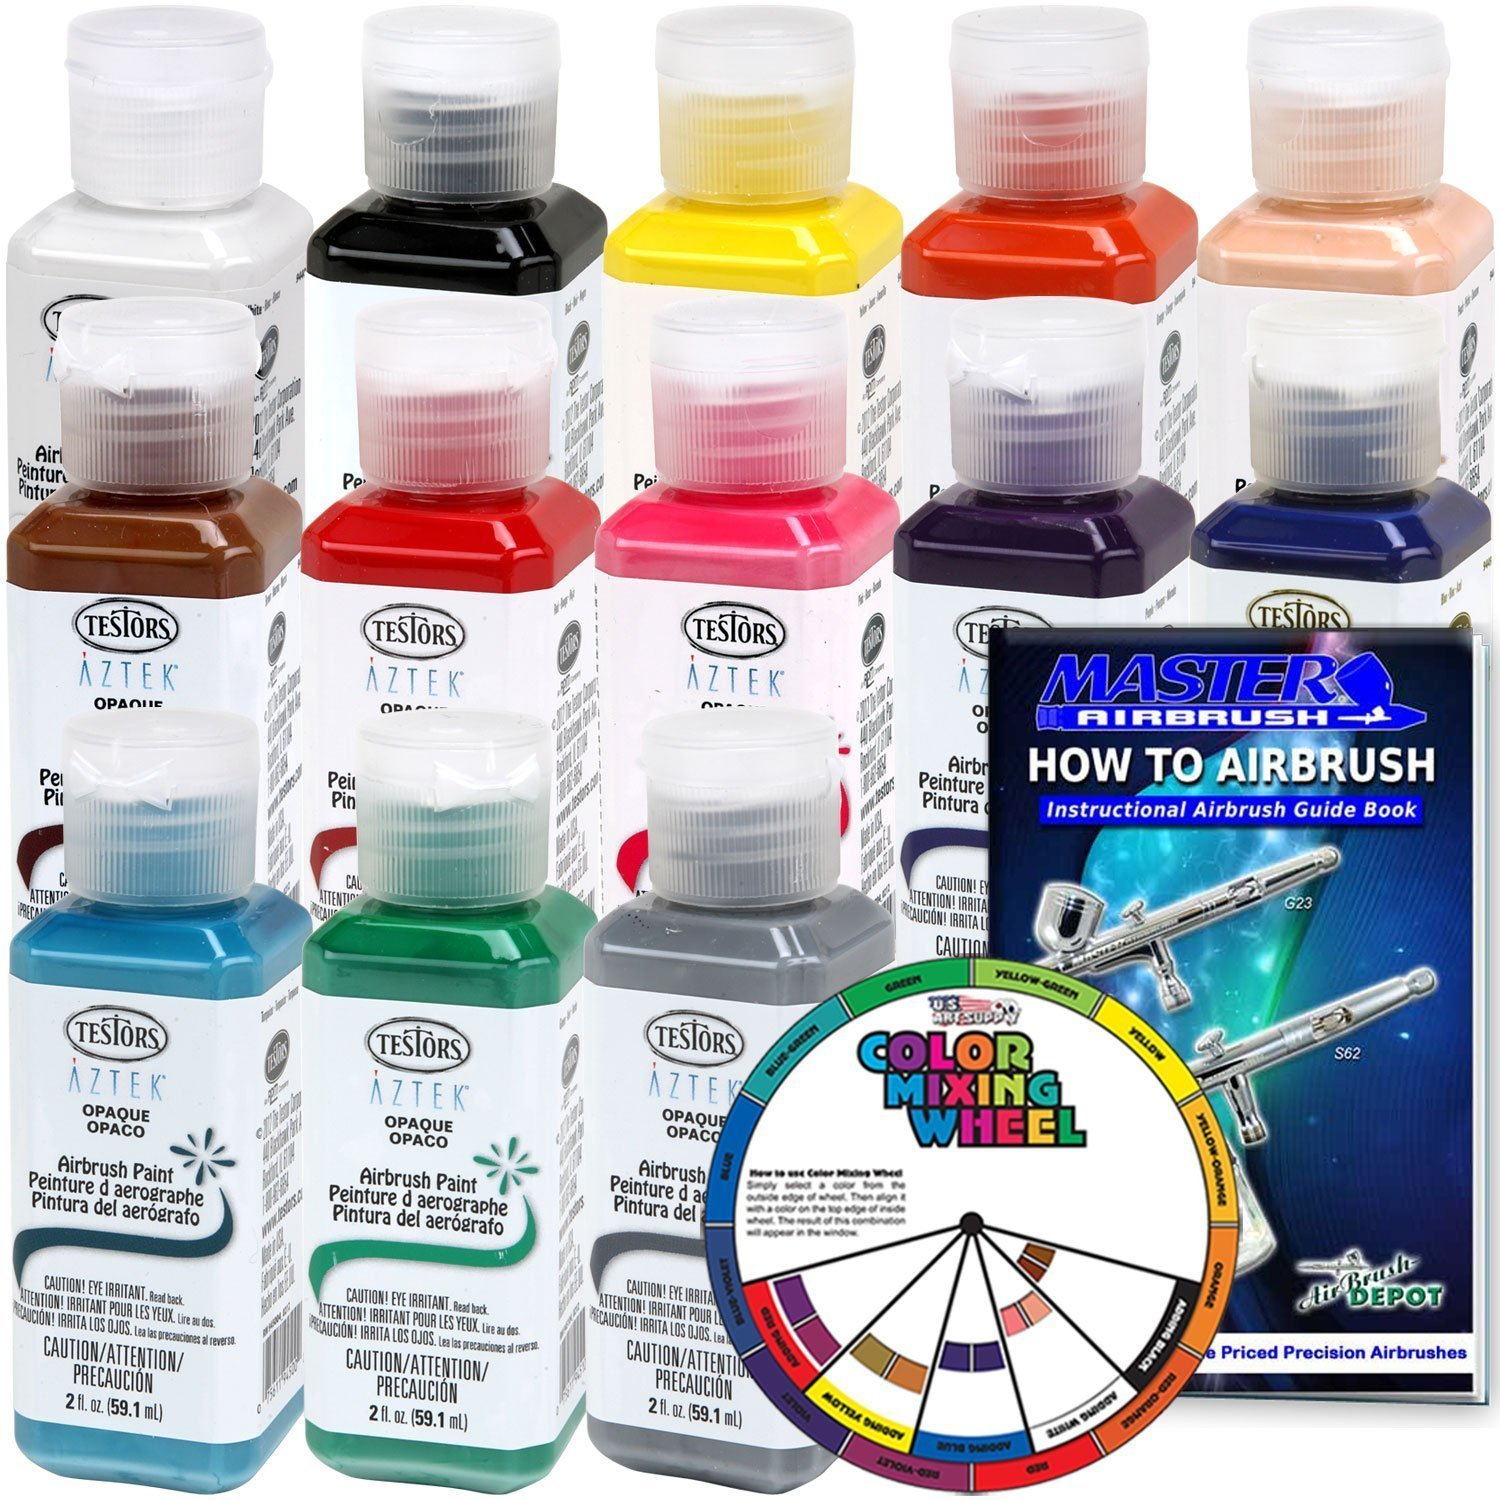 TESTORS - AZTEK Premium OPAQUE Acrylic Airbrush Paint 13-Color Set with FREE Color Wheel & How to Airbrush Manual by Testors